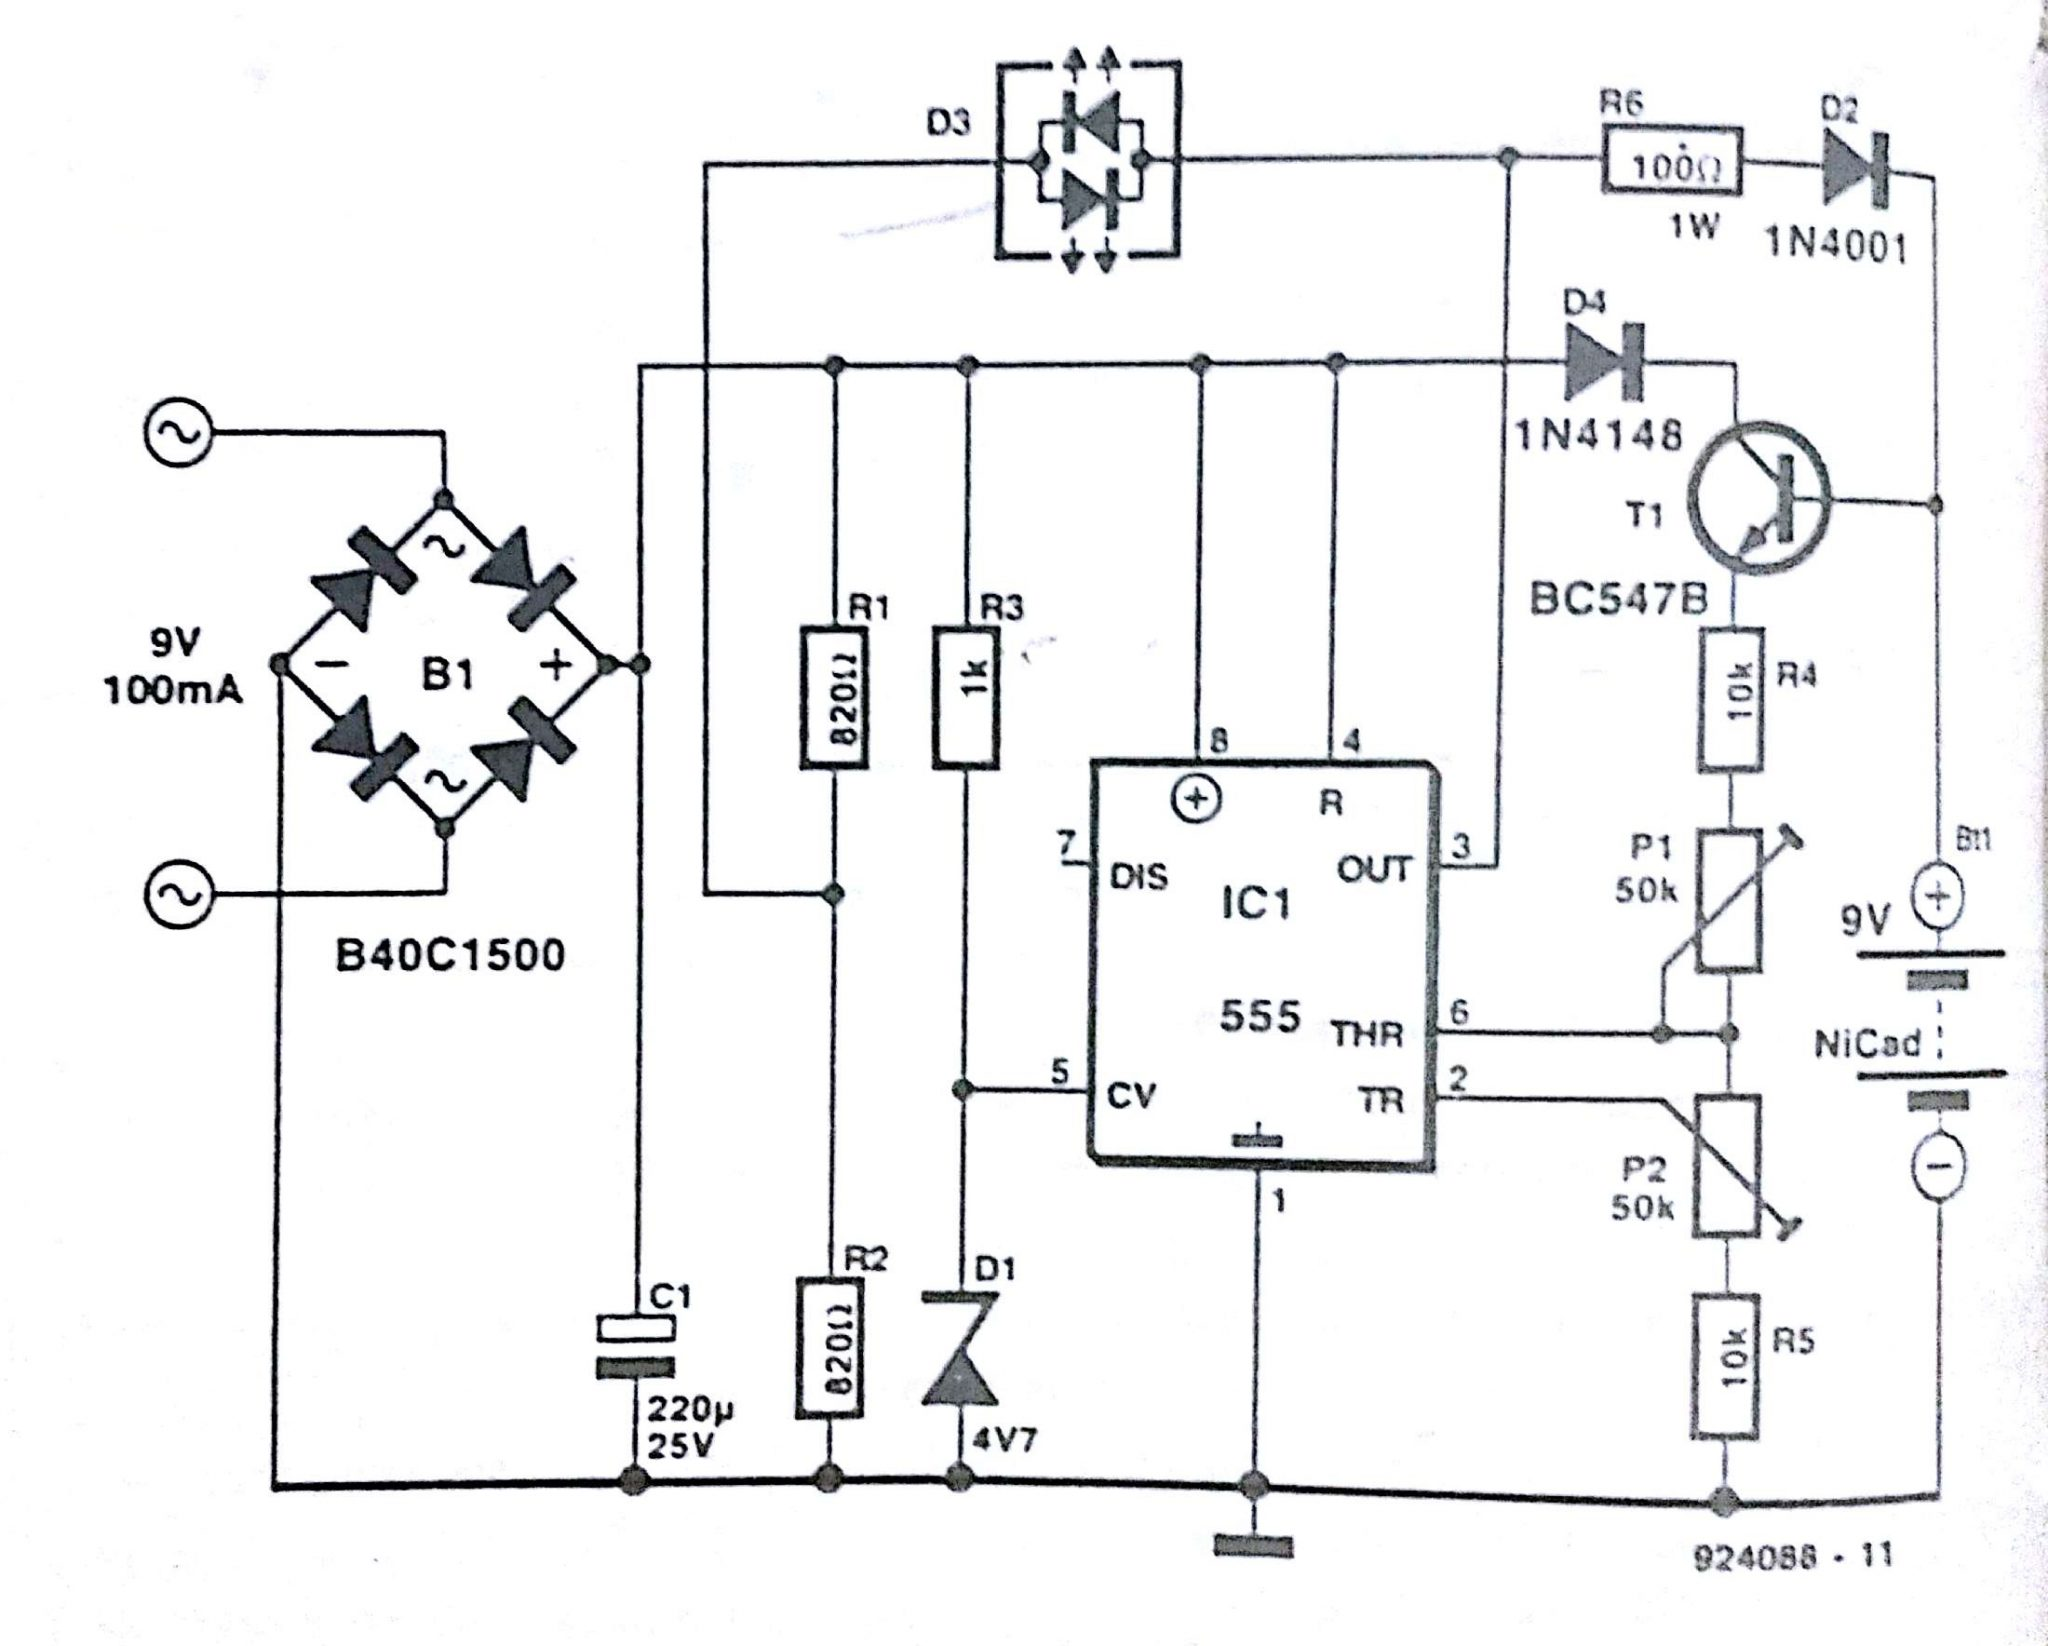 Wiring Diagram For Nokia Charger Electrical Diagrams Circuit 1100 Pdf Car Explained U2022 G6